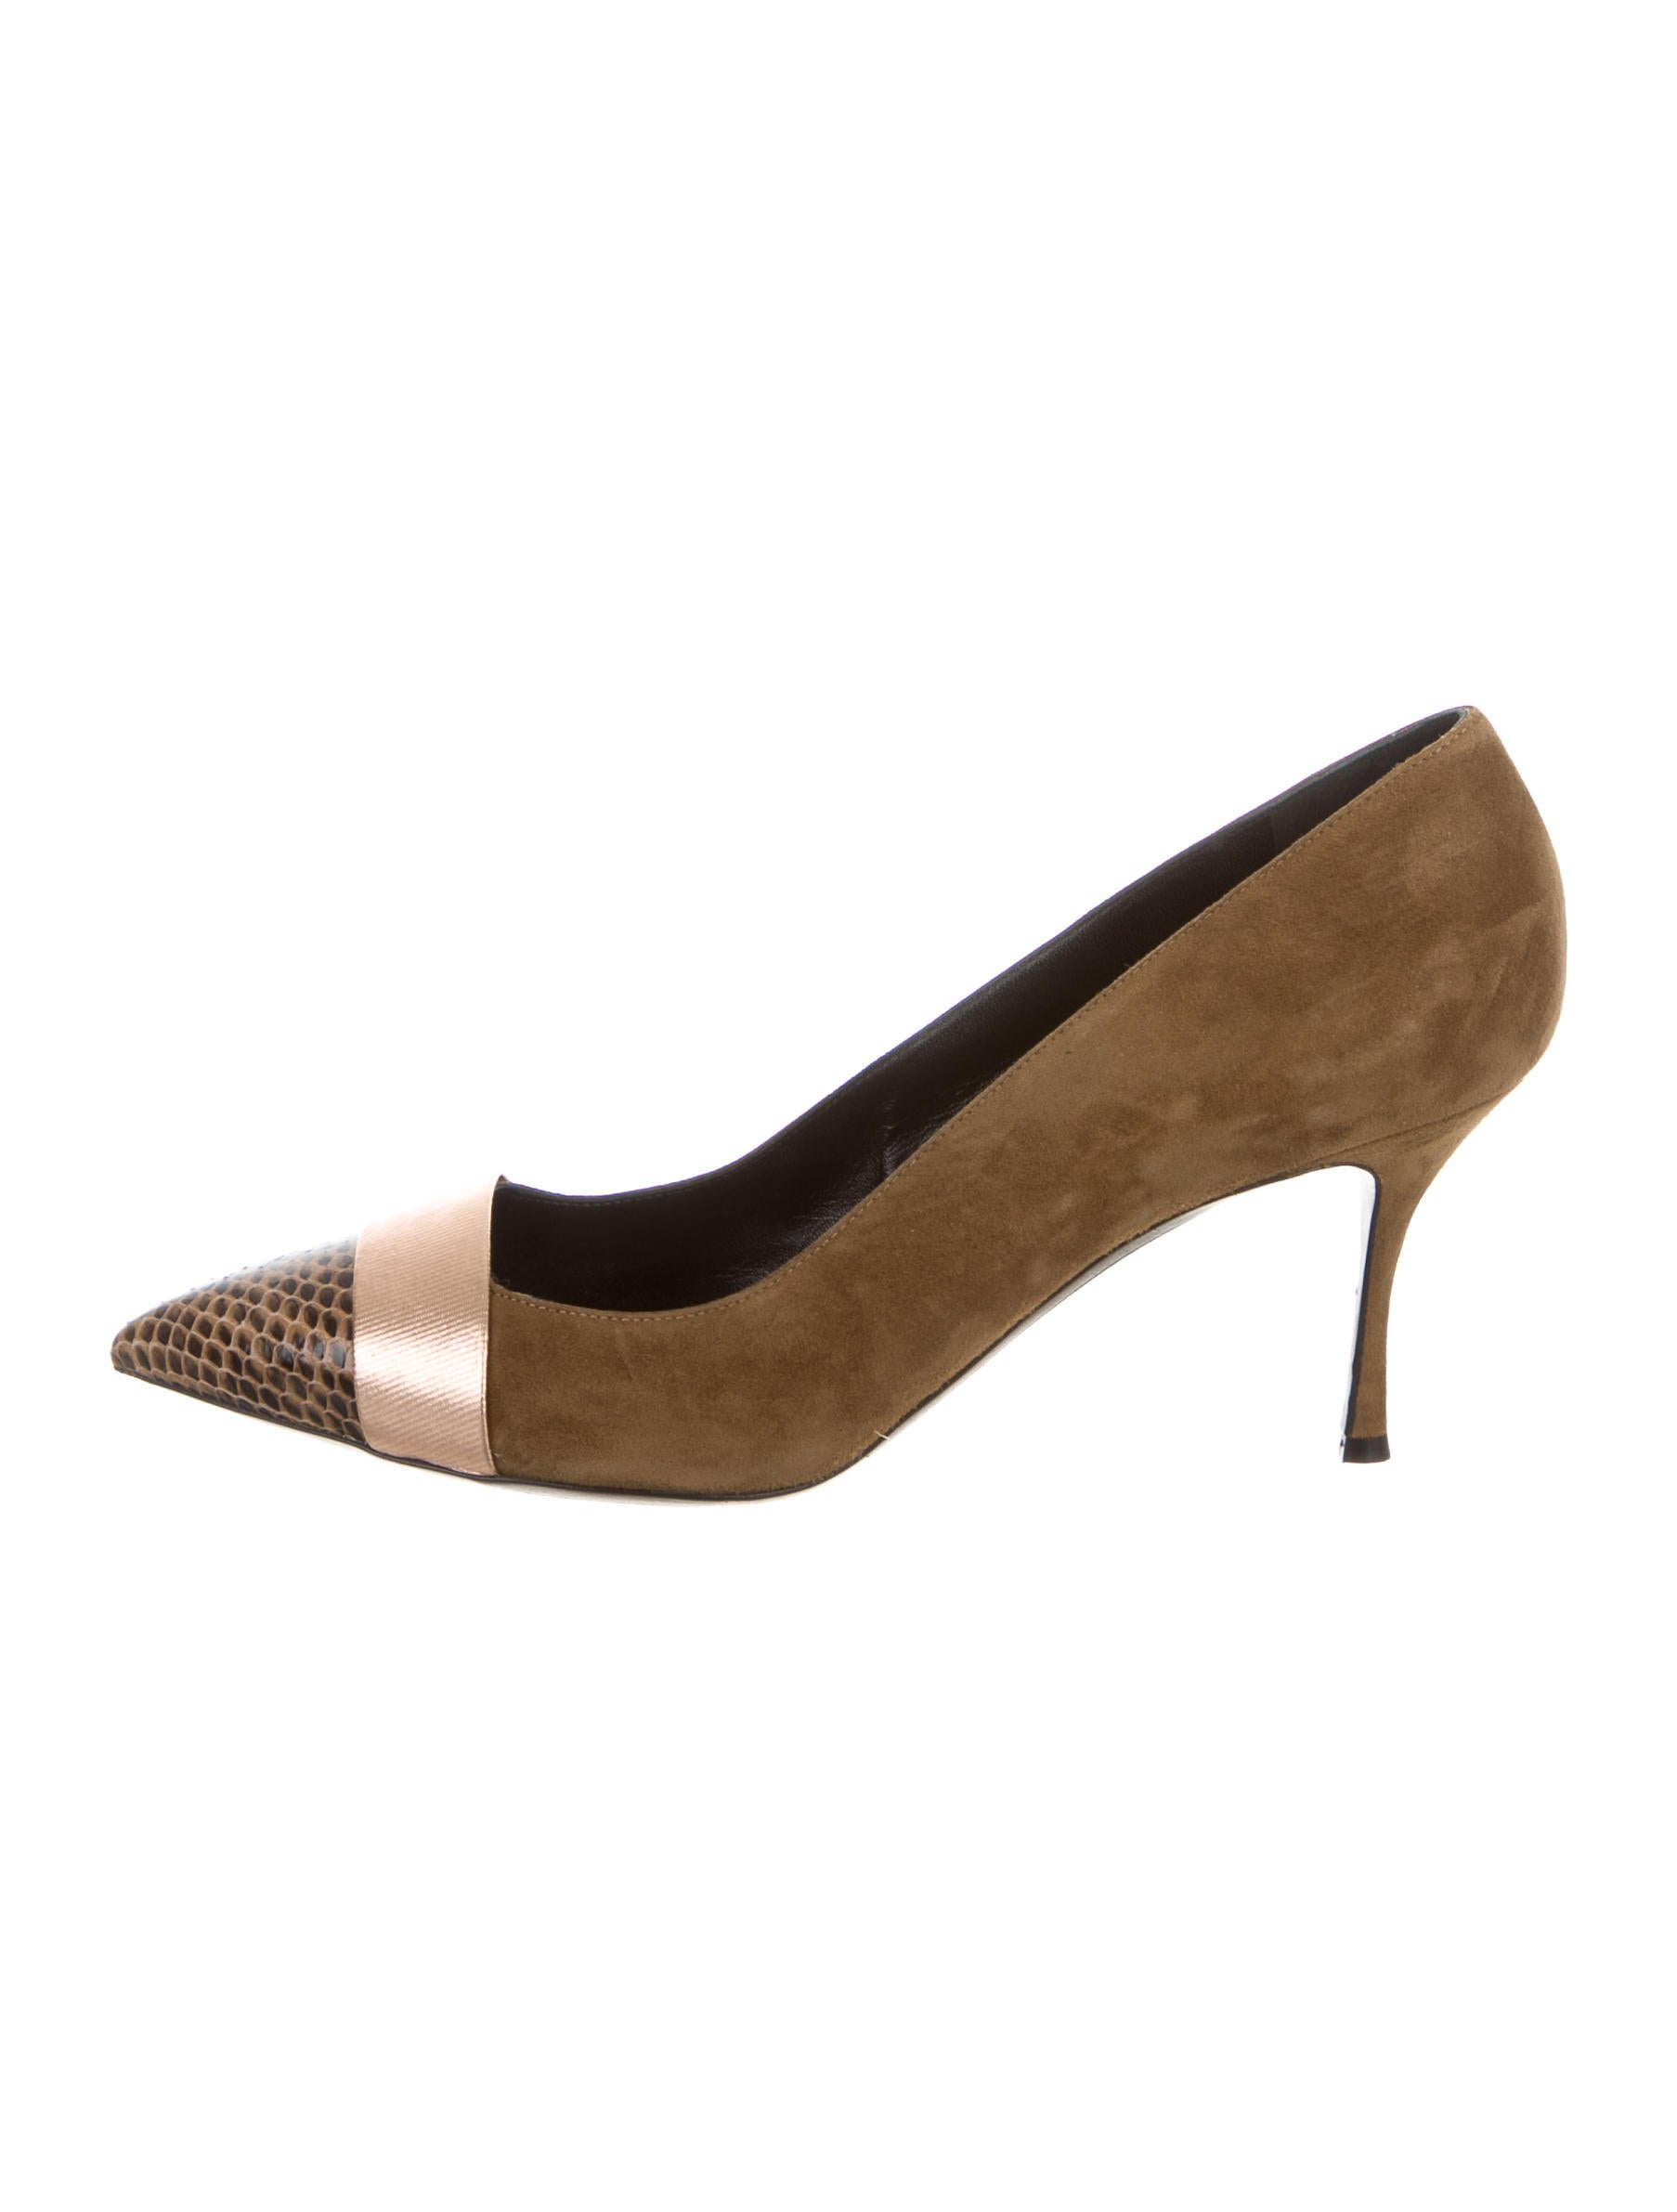 best deals Nicholas Kirkwood Snakeskin Cap-Toe Pumps cheap sale for cheap with paypal low price clearance cheap price ktcF86